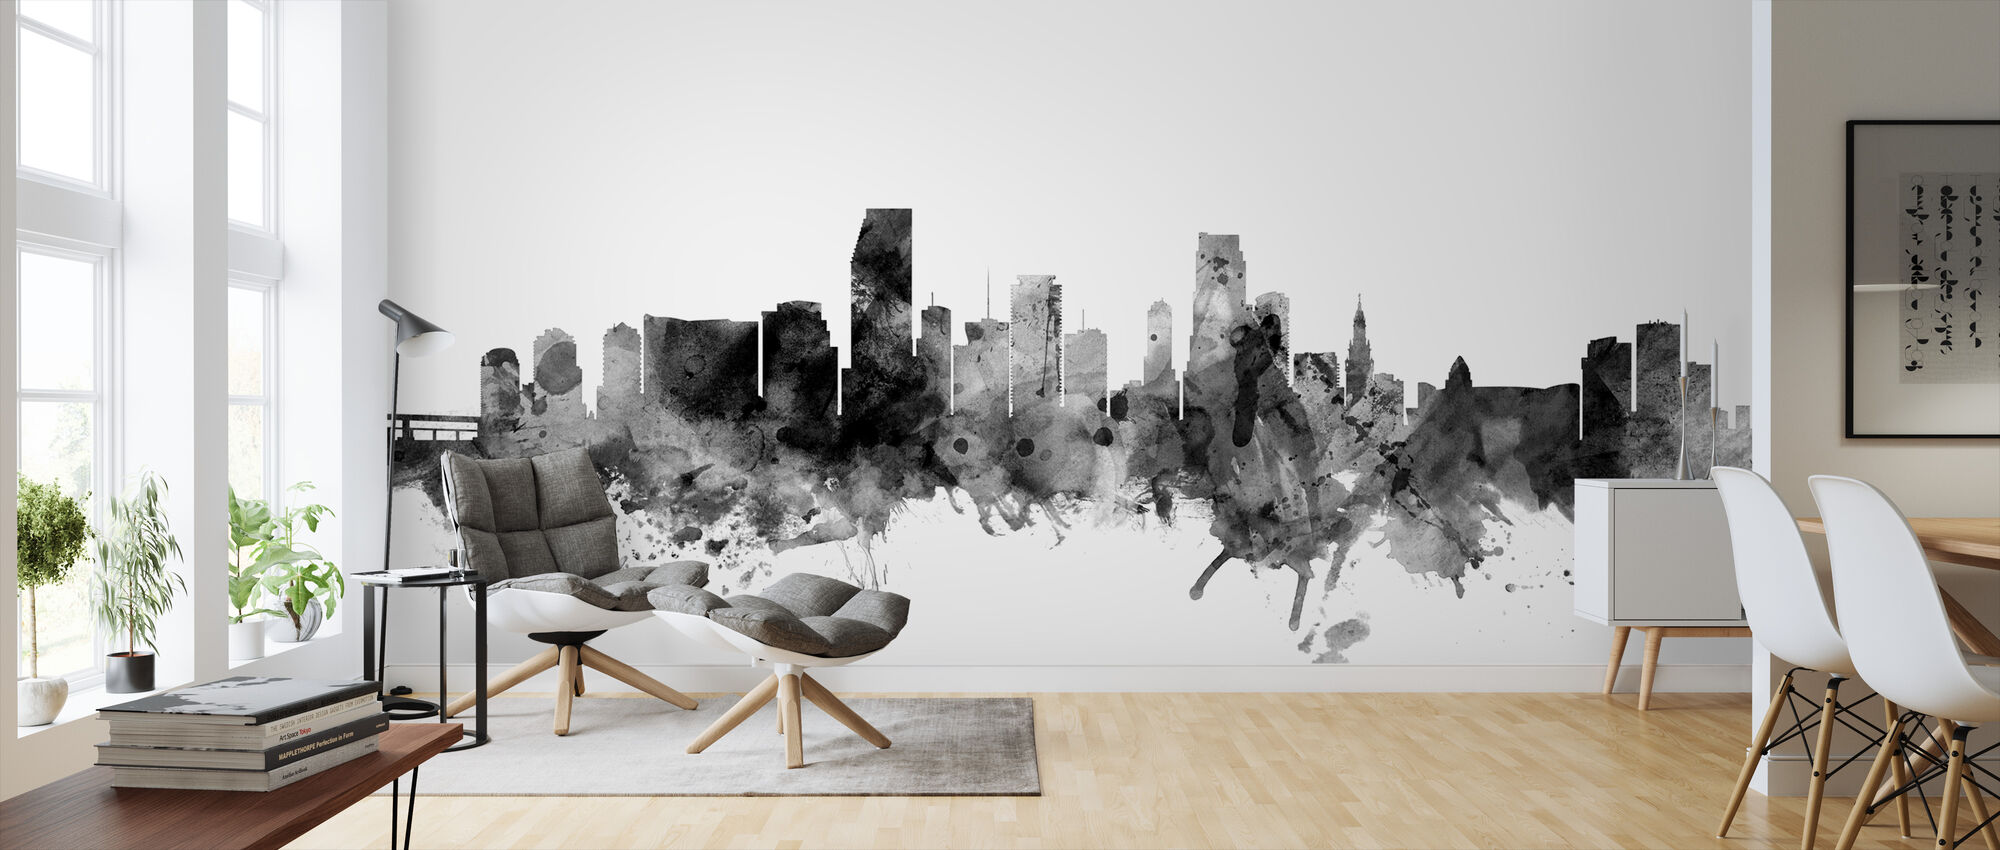 Miami Florida Skyline Black - Wallpaper - Living Room